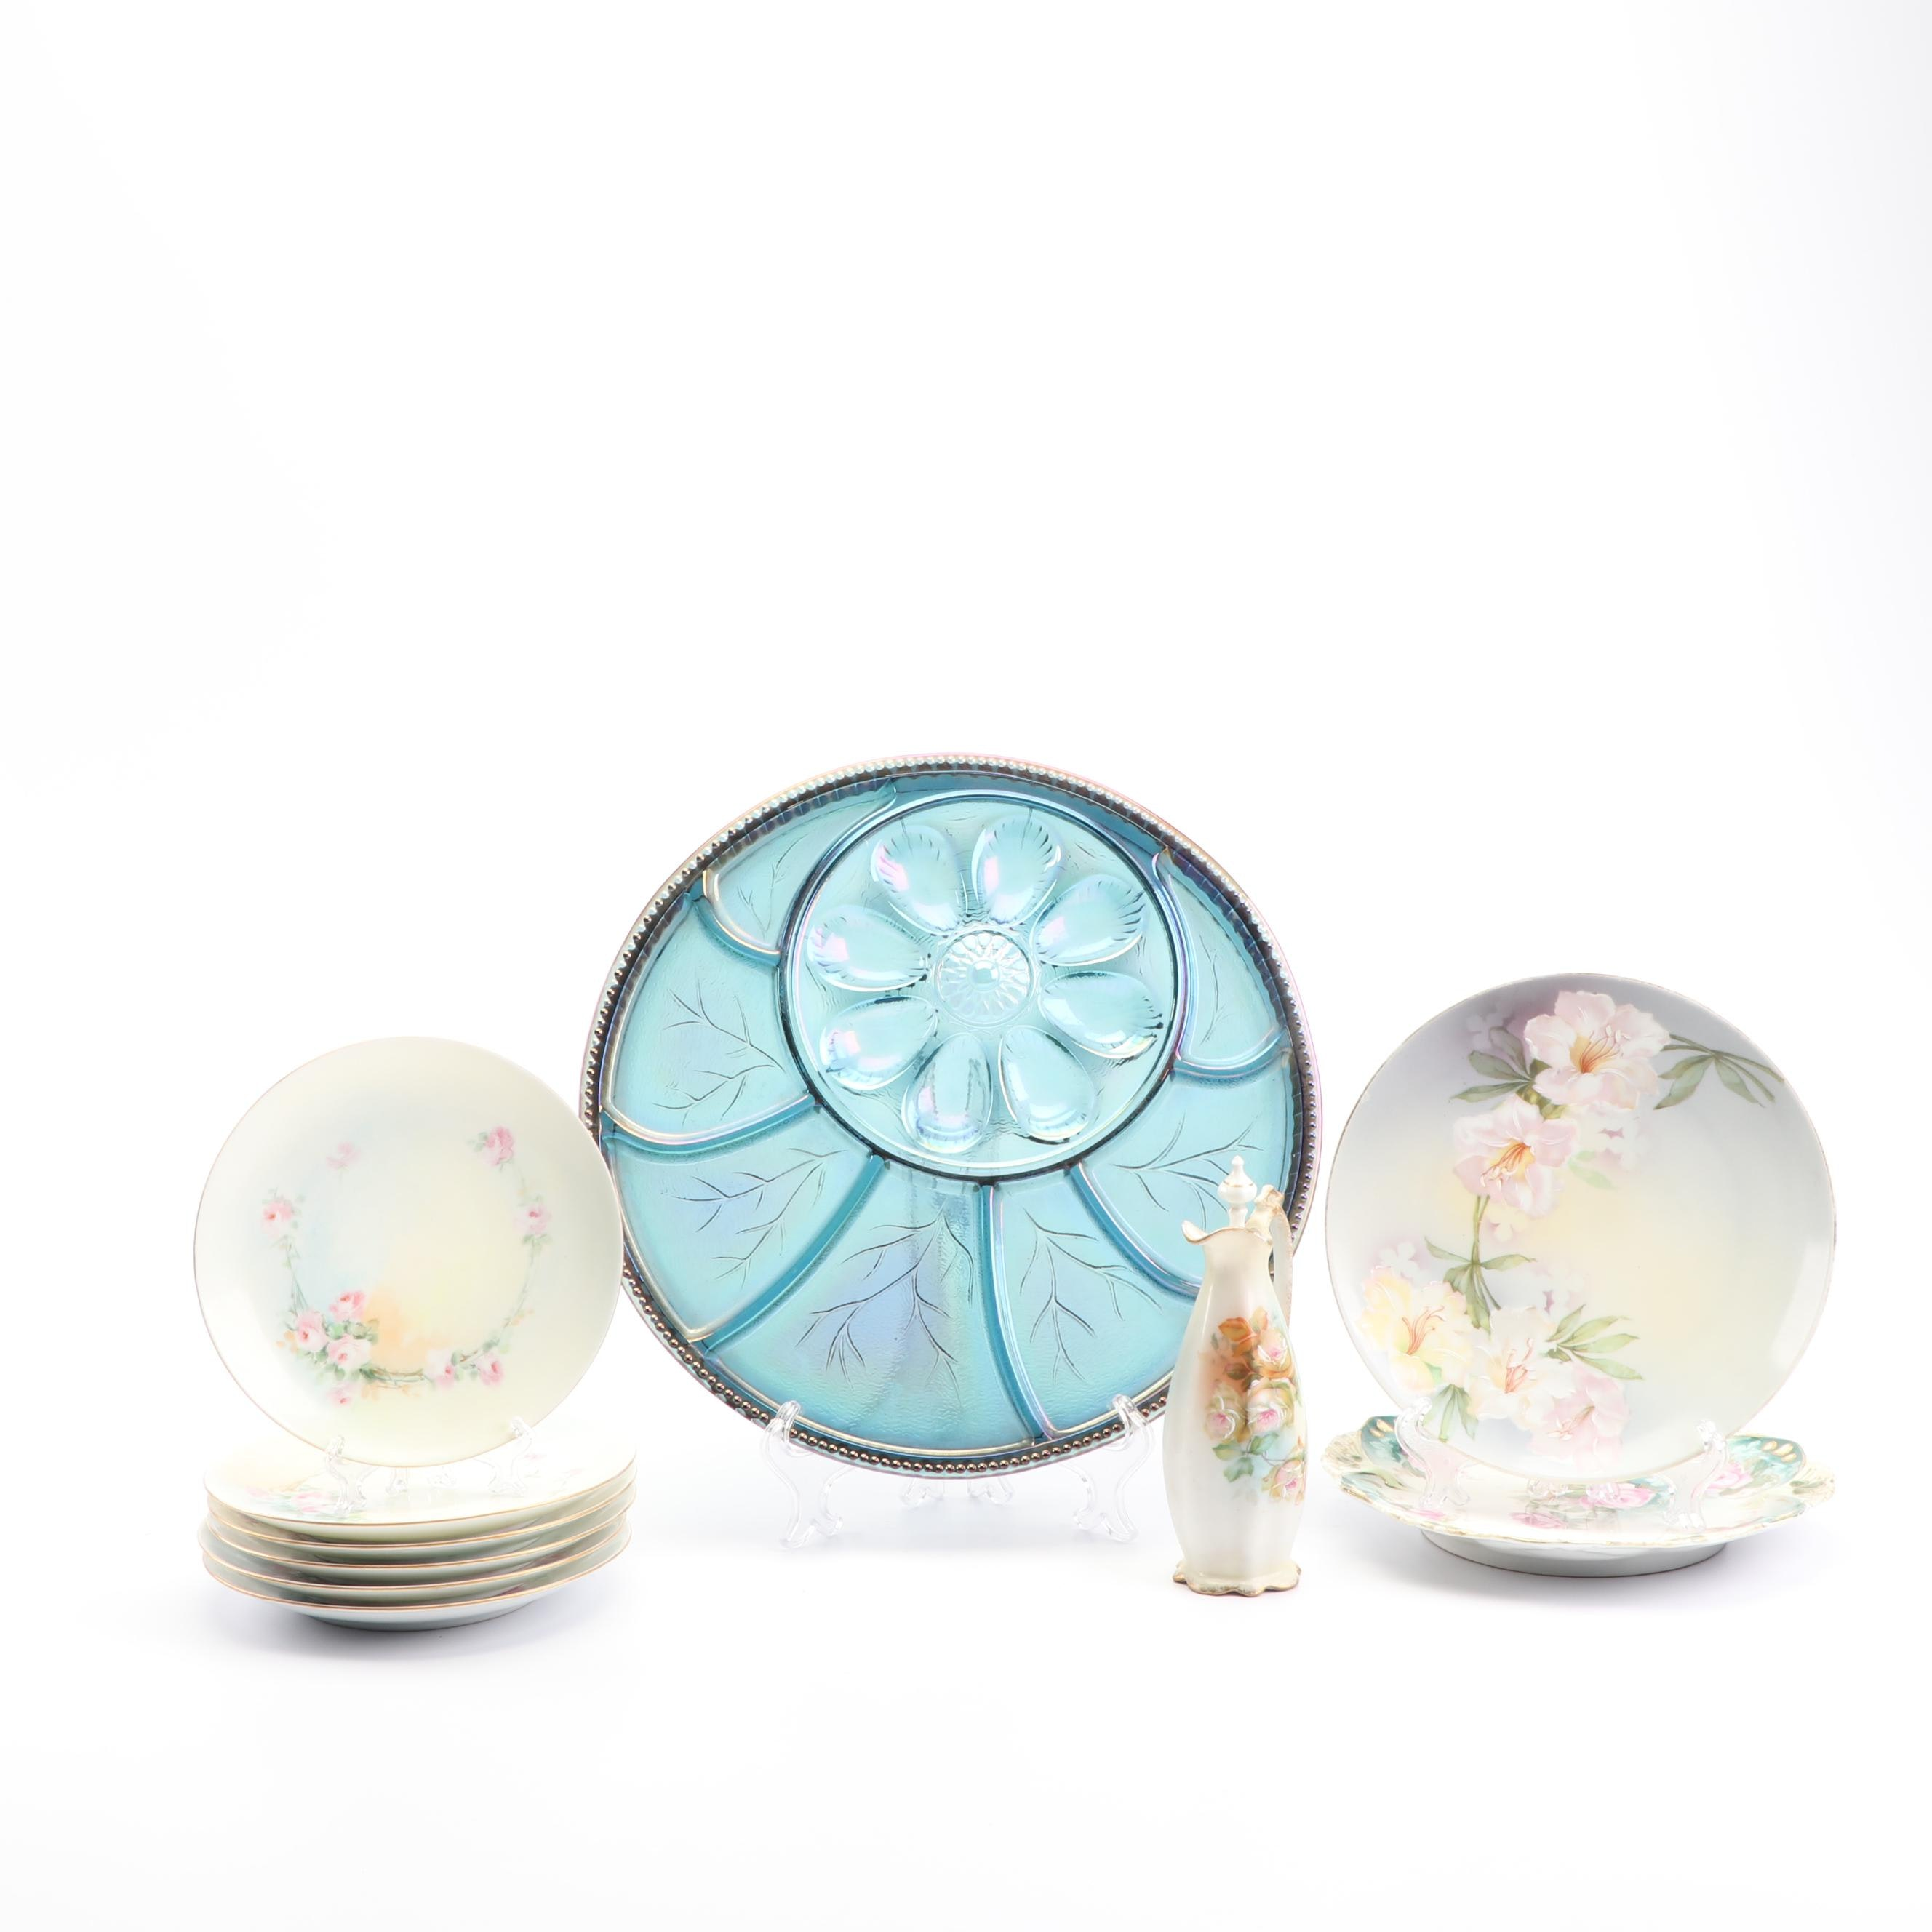 Late 19th/Early 20th Century Austrian Porcelain Tableware and Glass Serving Dish